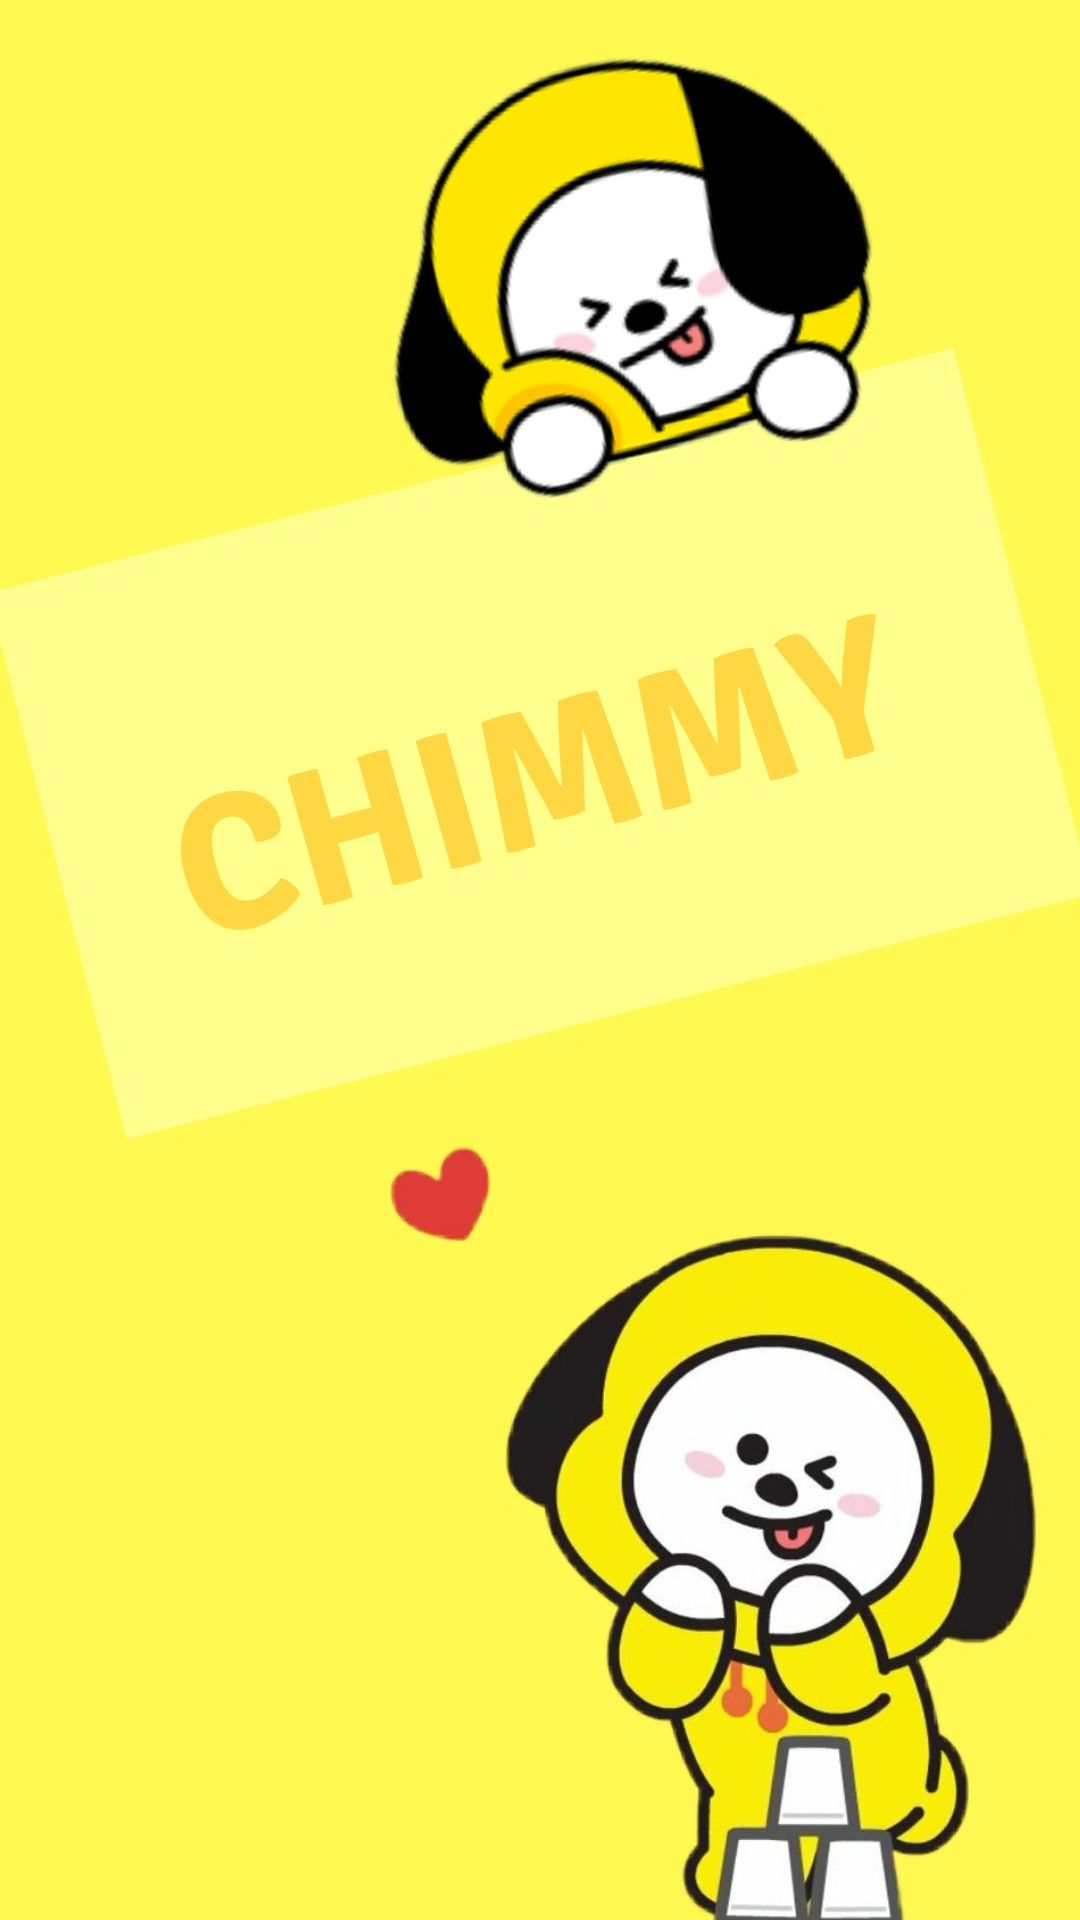 Chimmy Bt21 Wallpapers Top Free Chimmy Bt21 Backgrounds Wallpaperaccess Bt21 chimmy baby lighting bag charm doll. chimmy bt21 wallpapers top free